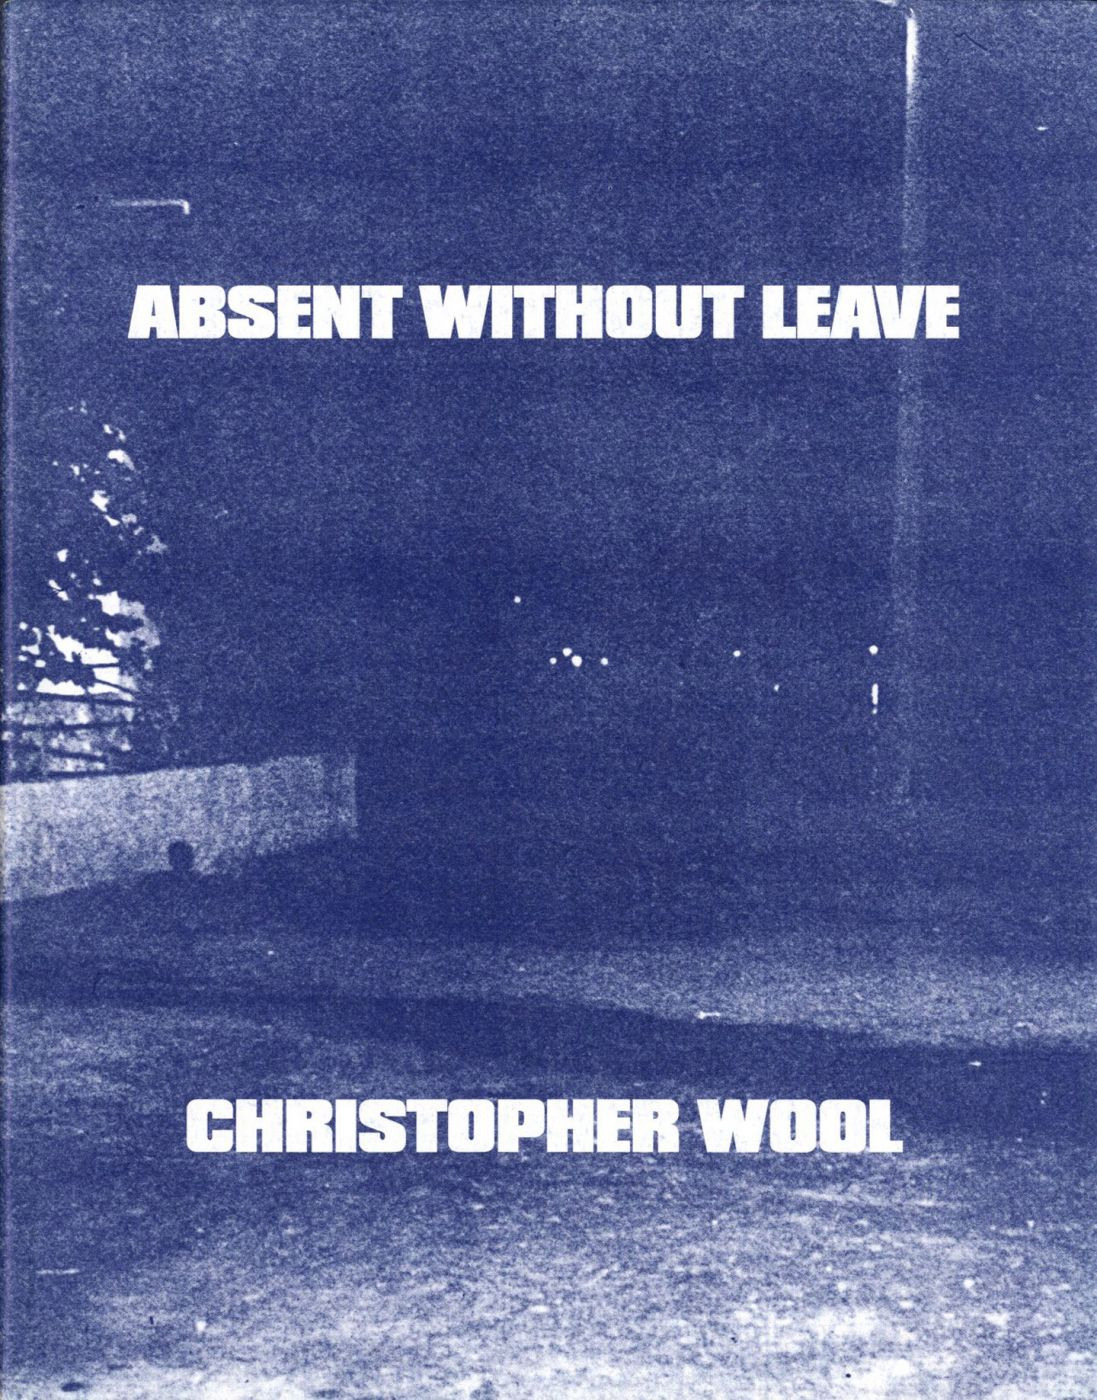 Christopher Wool: Absent Without Leave [SIGNED]